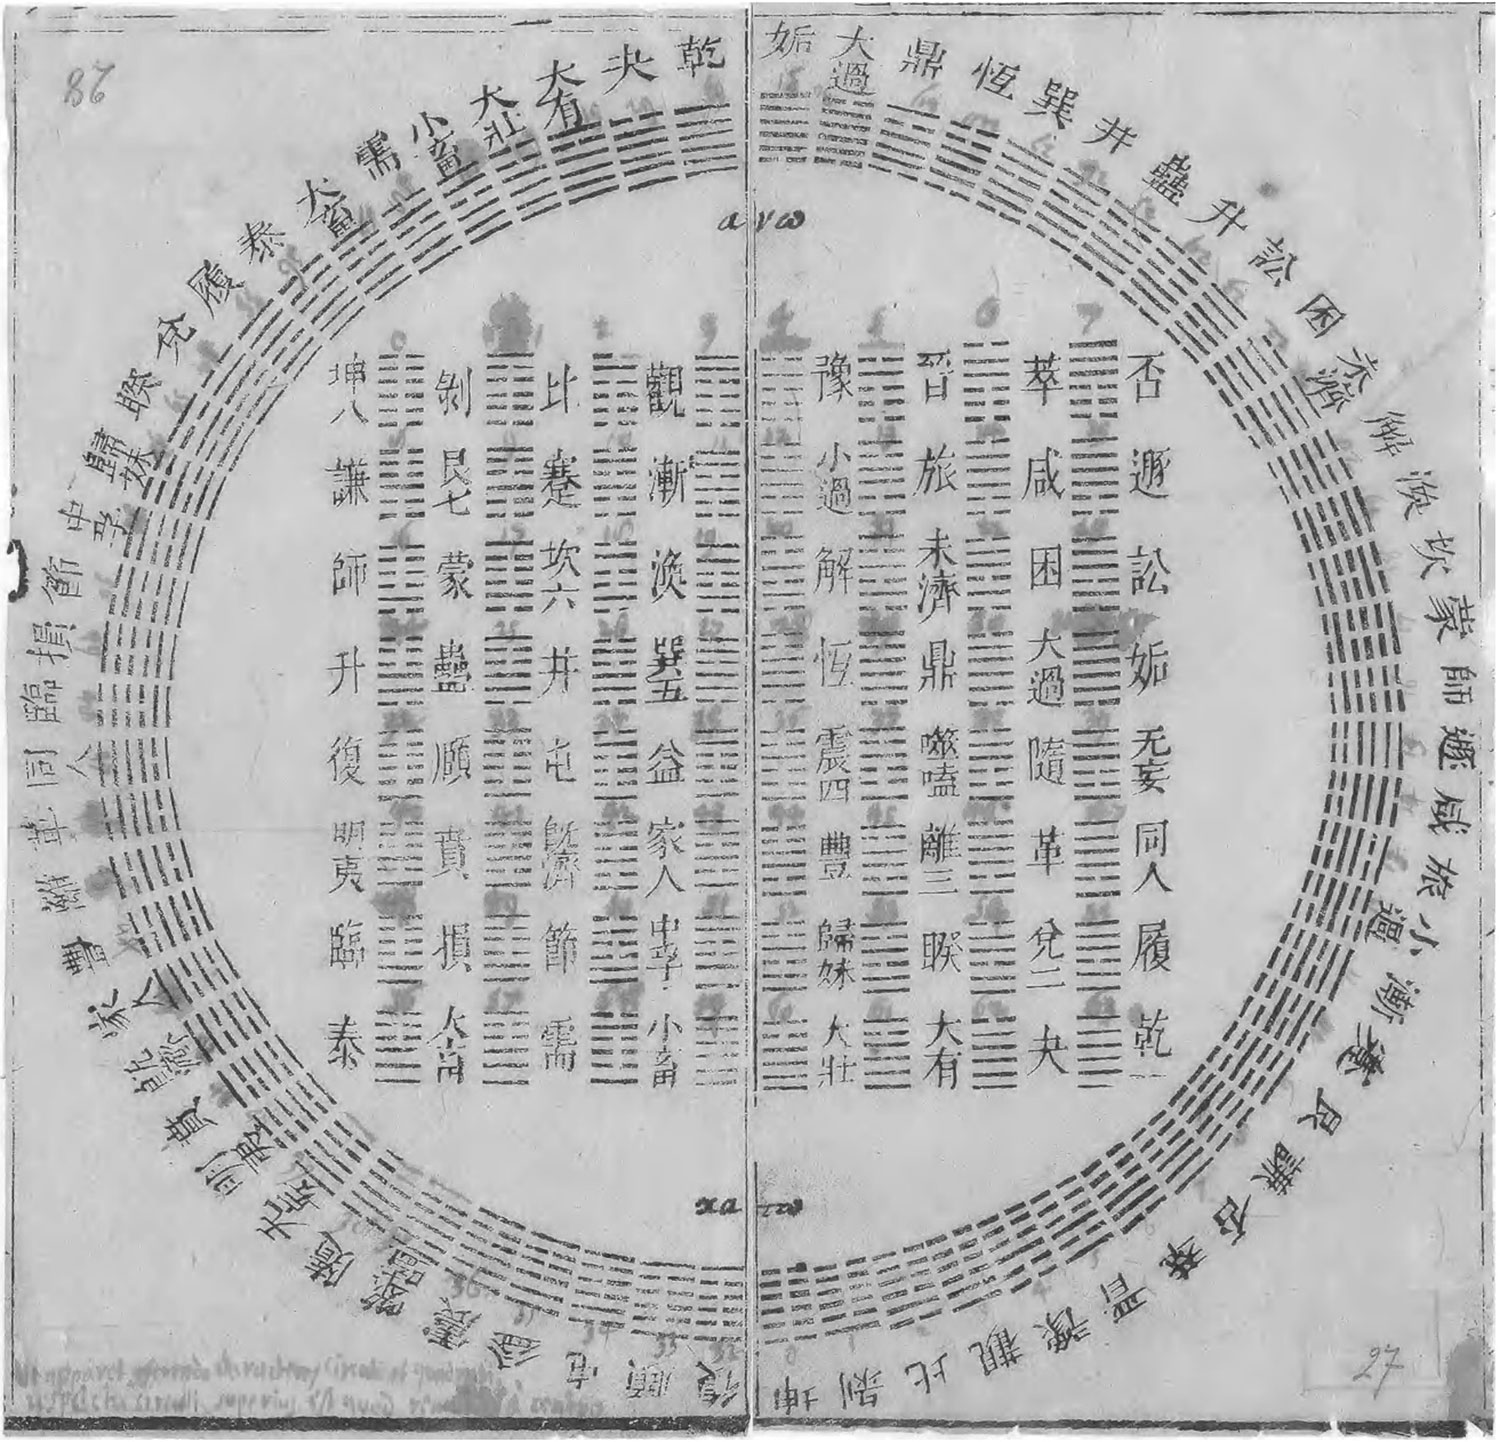 diagram_of_i_ching_hexagrams_owned_by_go